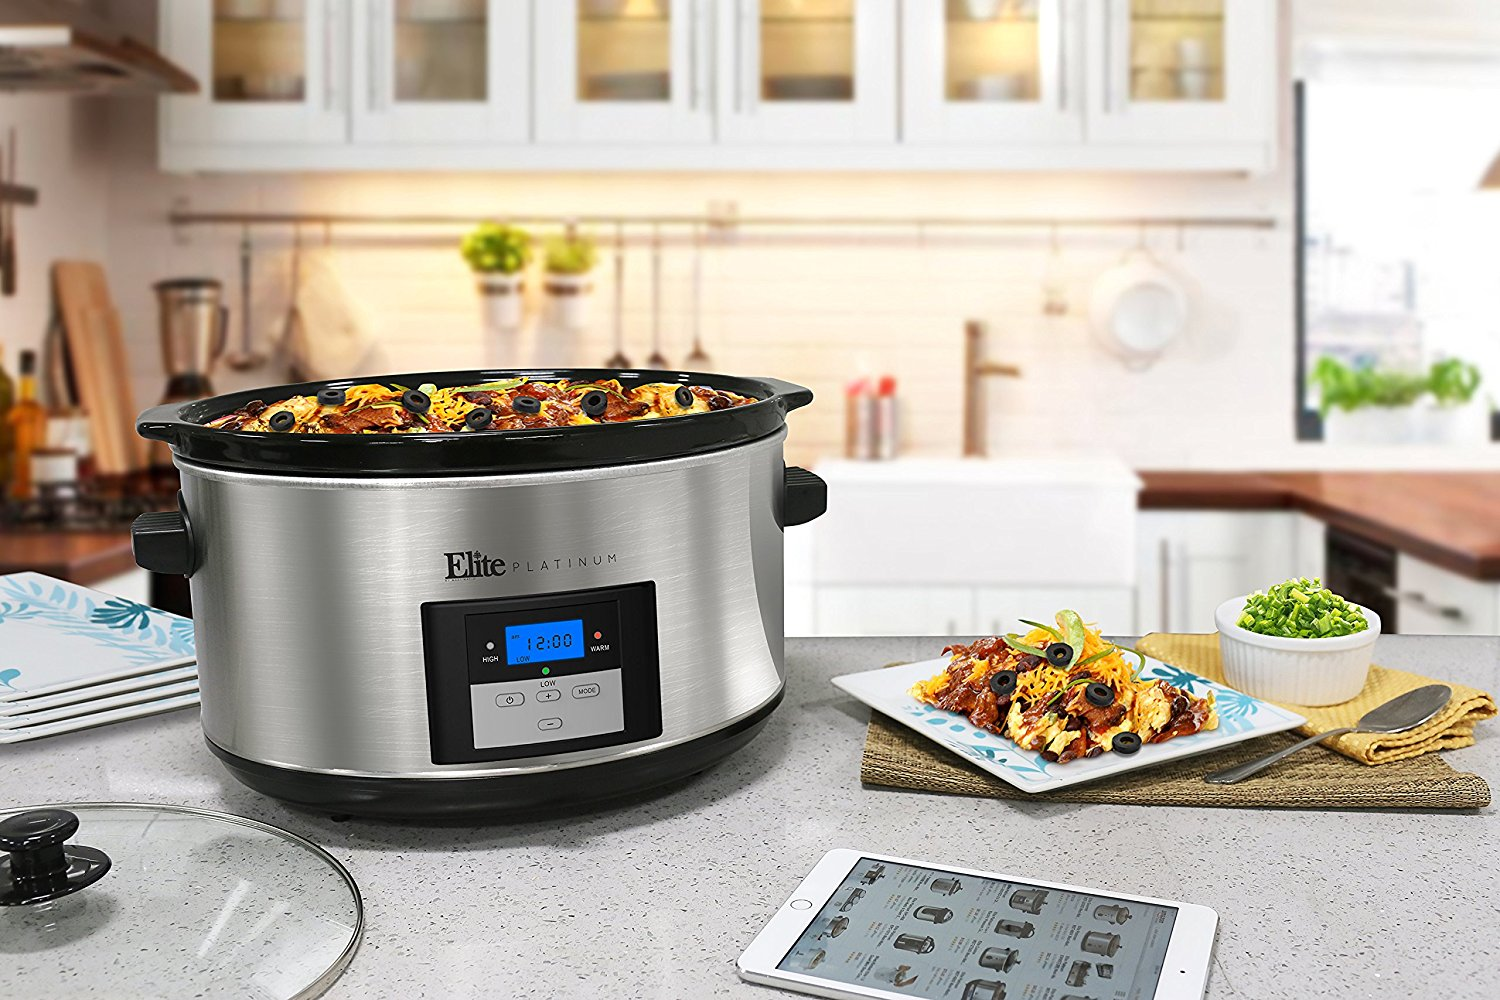 Top 10 Best Programmable Slow Cooker Under $200 Reviews and Ultimate Buyer's Guide